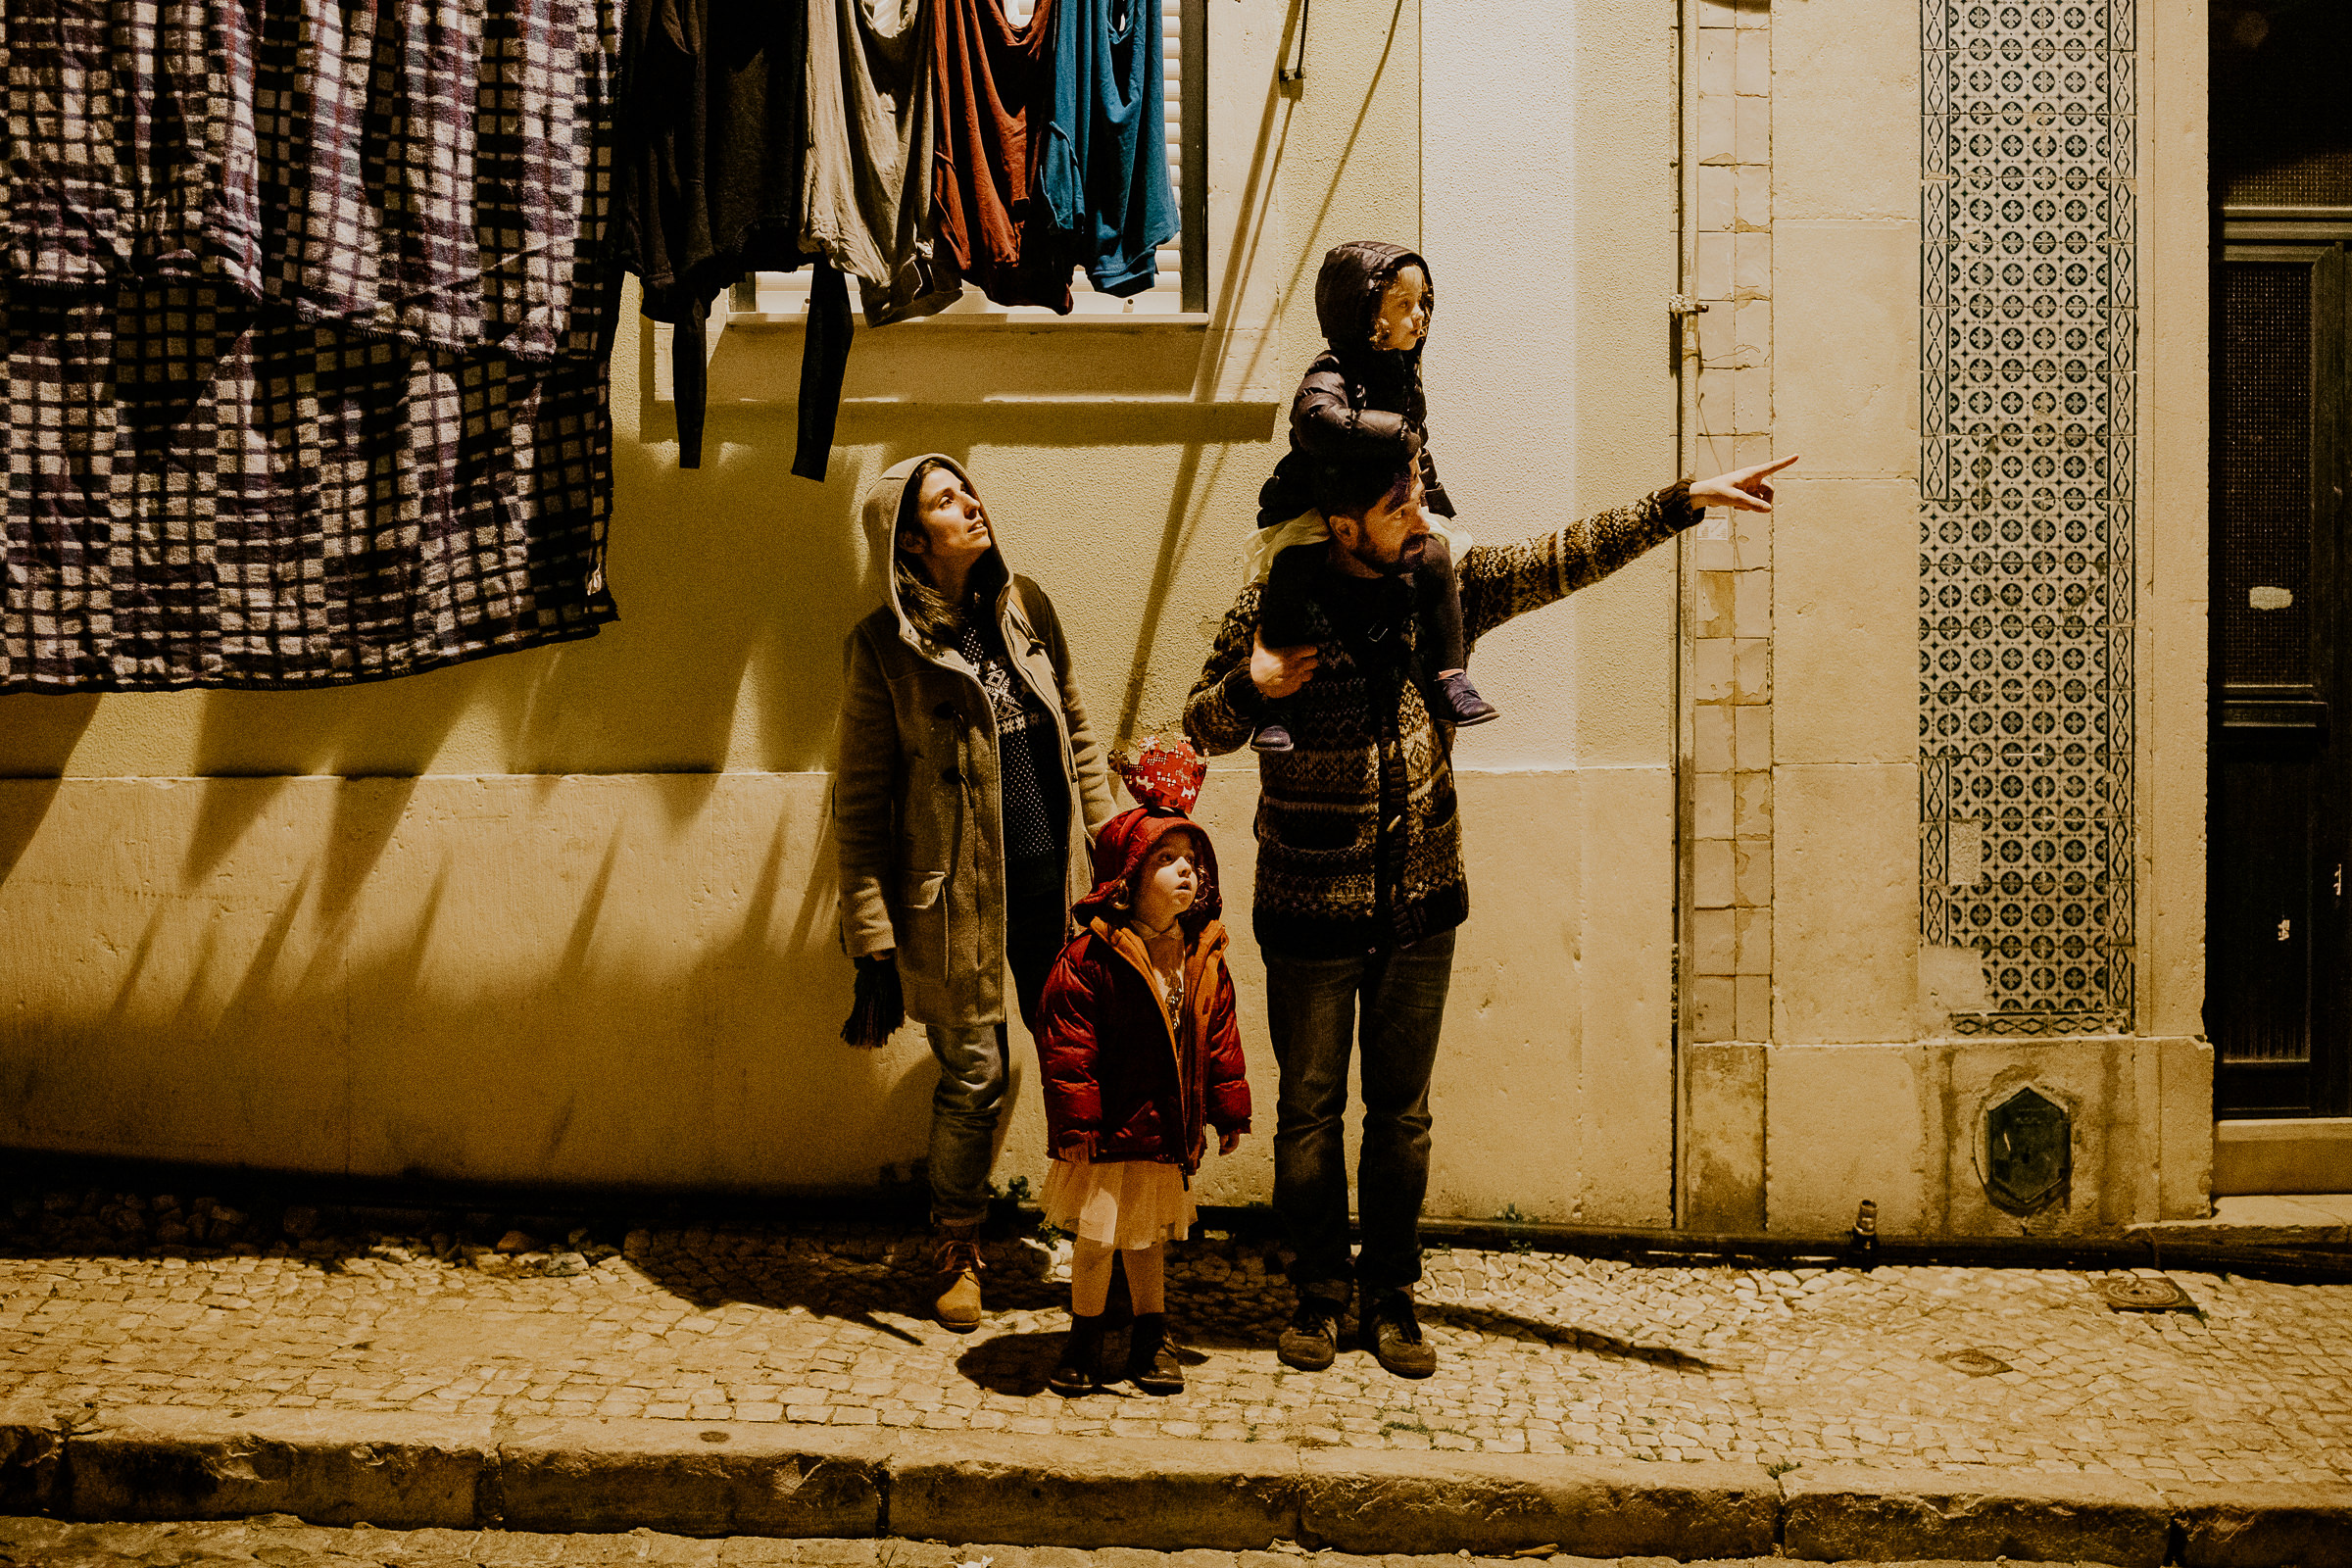 portuguese family in lisbon streets at night